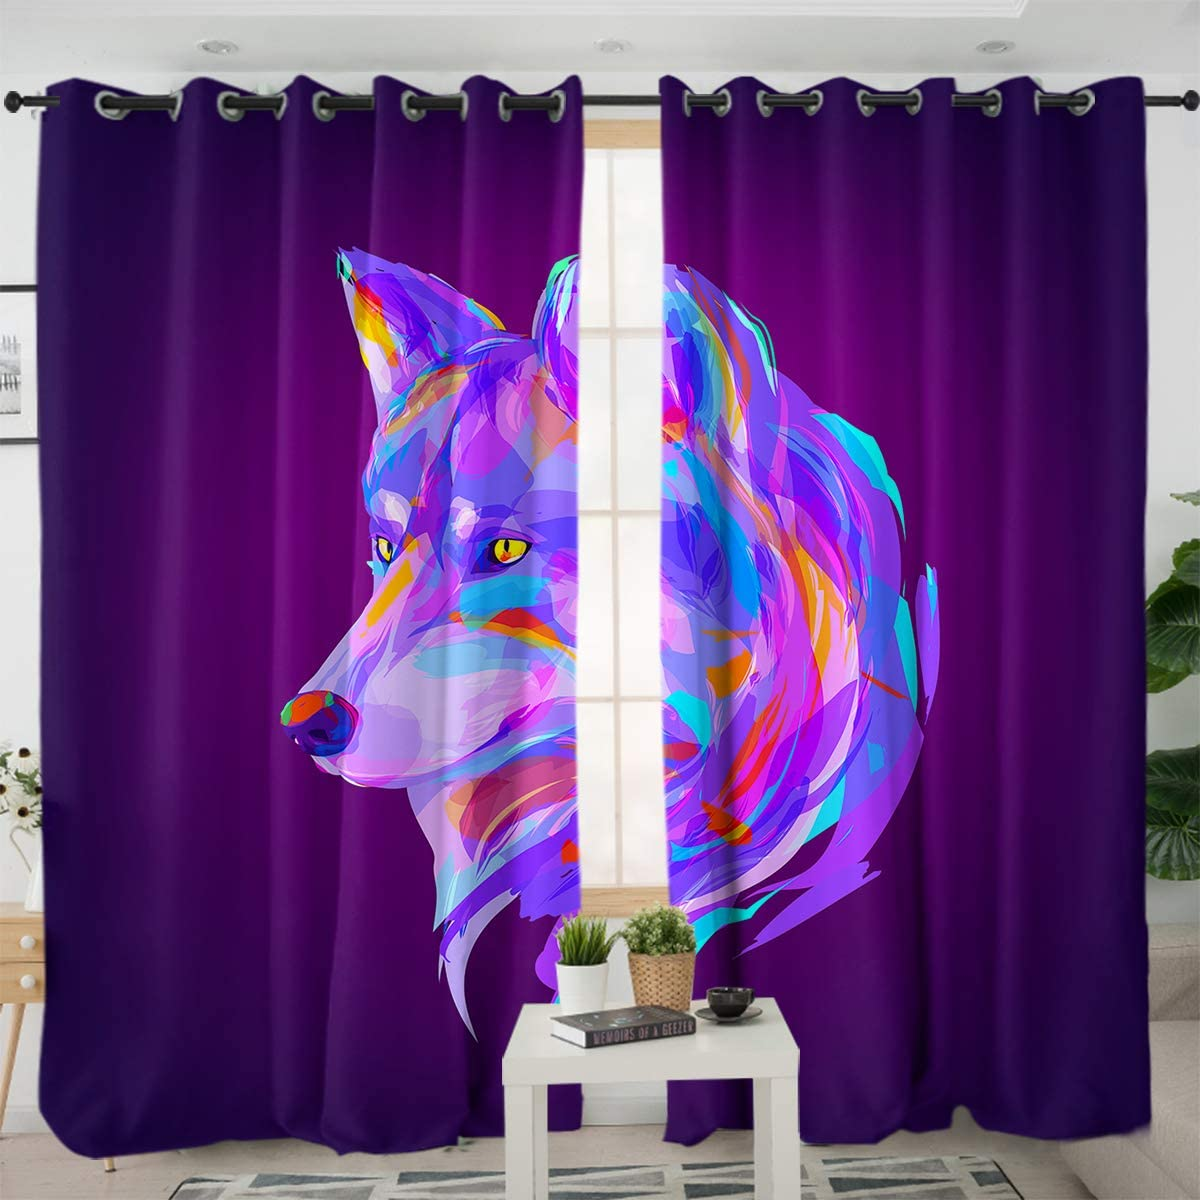 Sleepwish Colorful Wolf Printed Curtain Panels Retro Animal Window Treatment Sets Decorative Curtains for Bedroom Living Room (2 Panels, 52x84 Inch, Grommet Top)